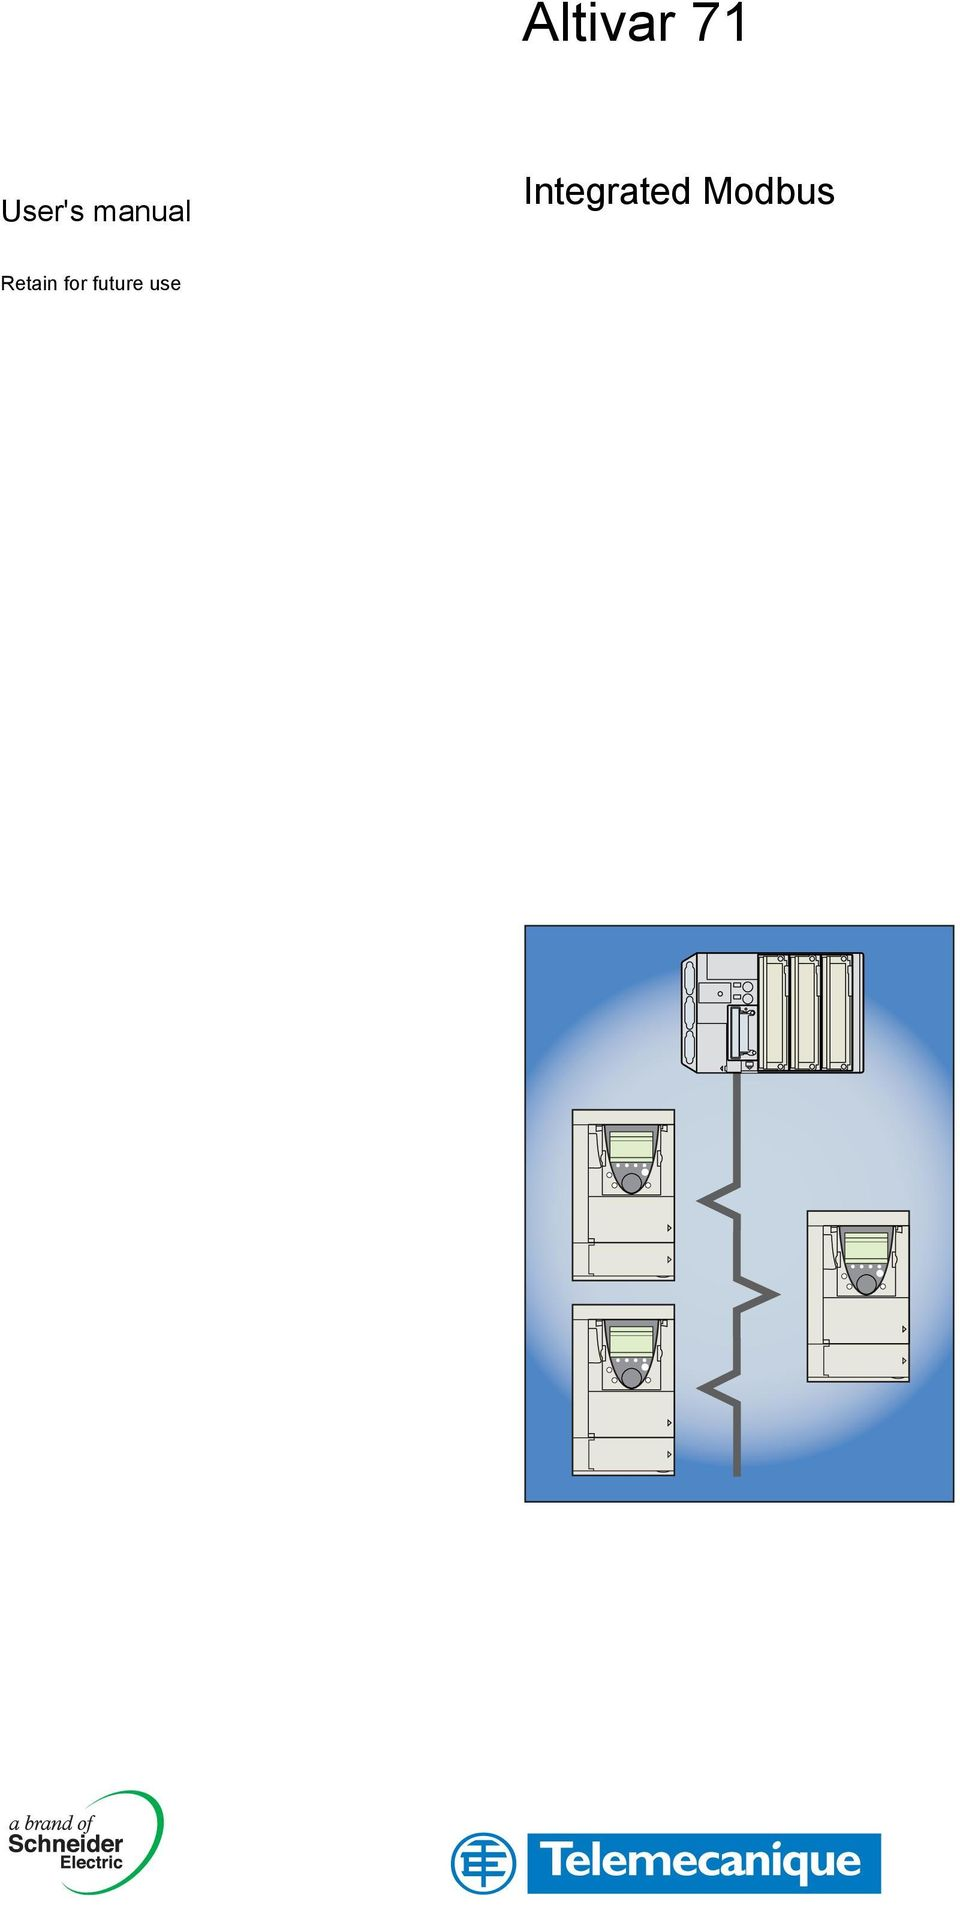 Altivar 71. Integrated Modbus. User's manual. Retain for future use on welding diagrams, electric switch diagrams, electric transformers diagrams, lighting diagrams, engineering diagrams, electric blueprints, electric brakes diagrams, water diagrams, hvac diagrams, electric circuit diagrams, chemistry diagrams, electric body, air conditioning diagrams, battery diagrams, electric schematic diagrams, electric drawings, safety diagrams, electric plug diagrams, boilers diagrams, electric generator diagrams,